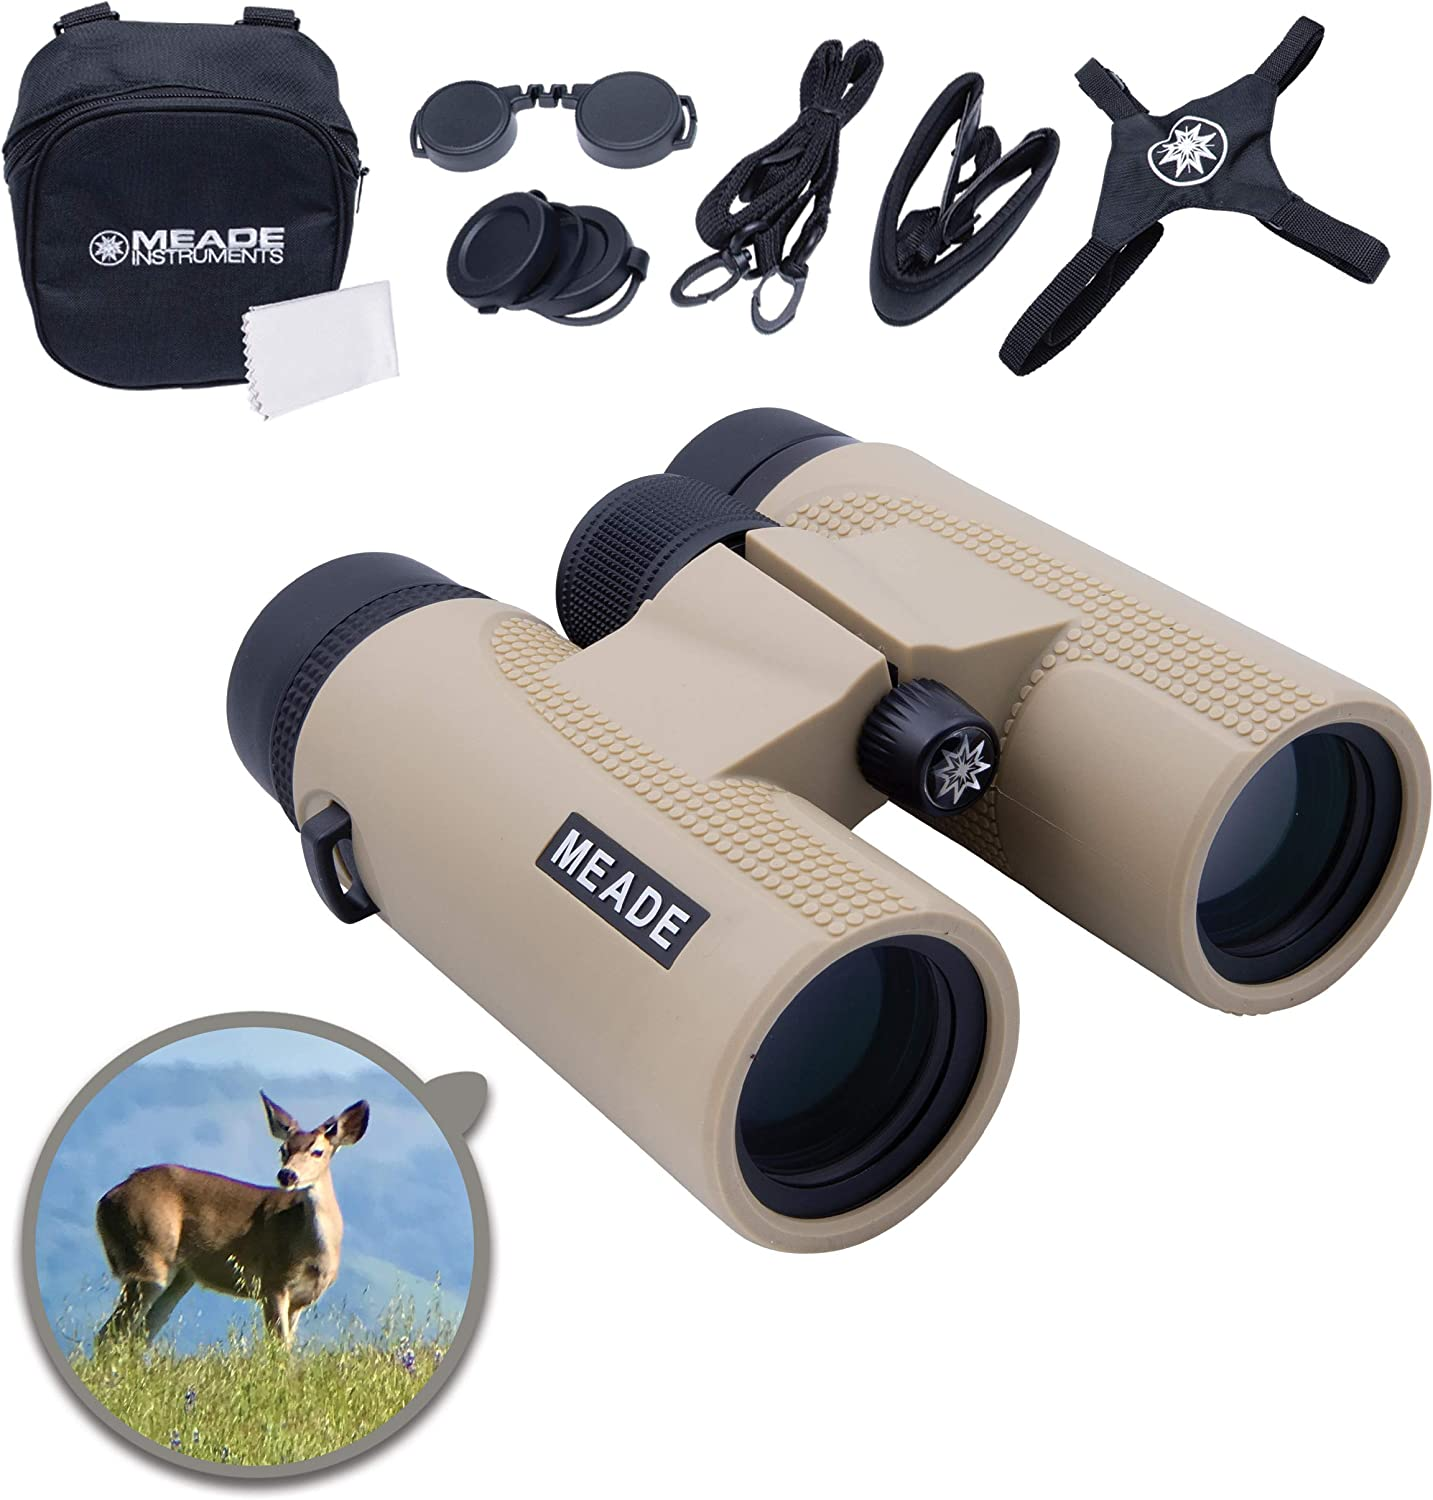 Meade Instruments – CanyonView ED (Extra-low Dispersion) 8x42 Powerful Outdoor Bird Watching Sightseeing Sports Concerts Travel Binoculars – Fully Multi-Coated BaK-4 Prisms – Durable & Waterproof